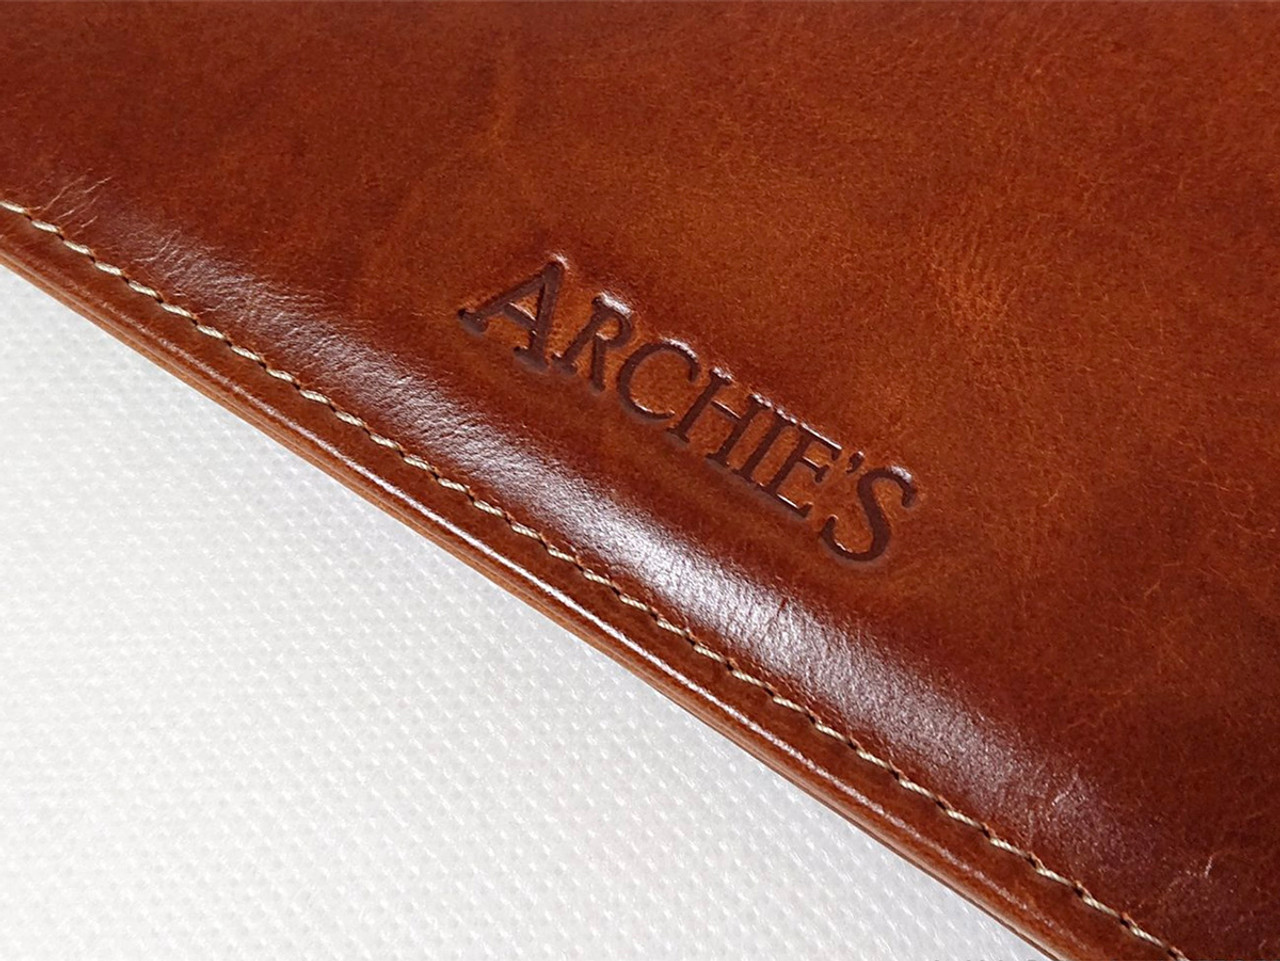 Archie's notebook and leather cover, imprint